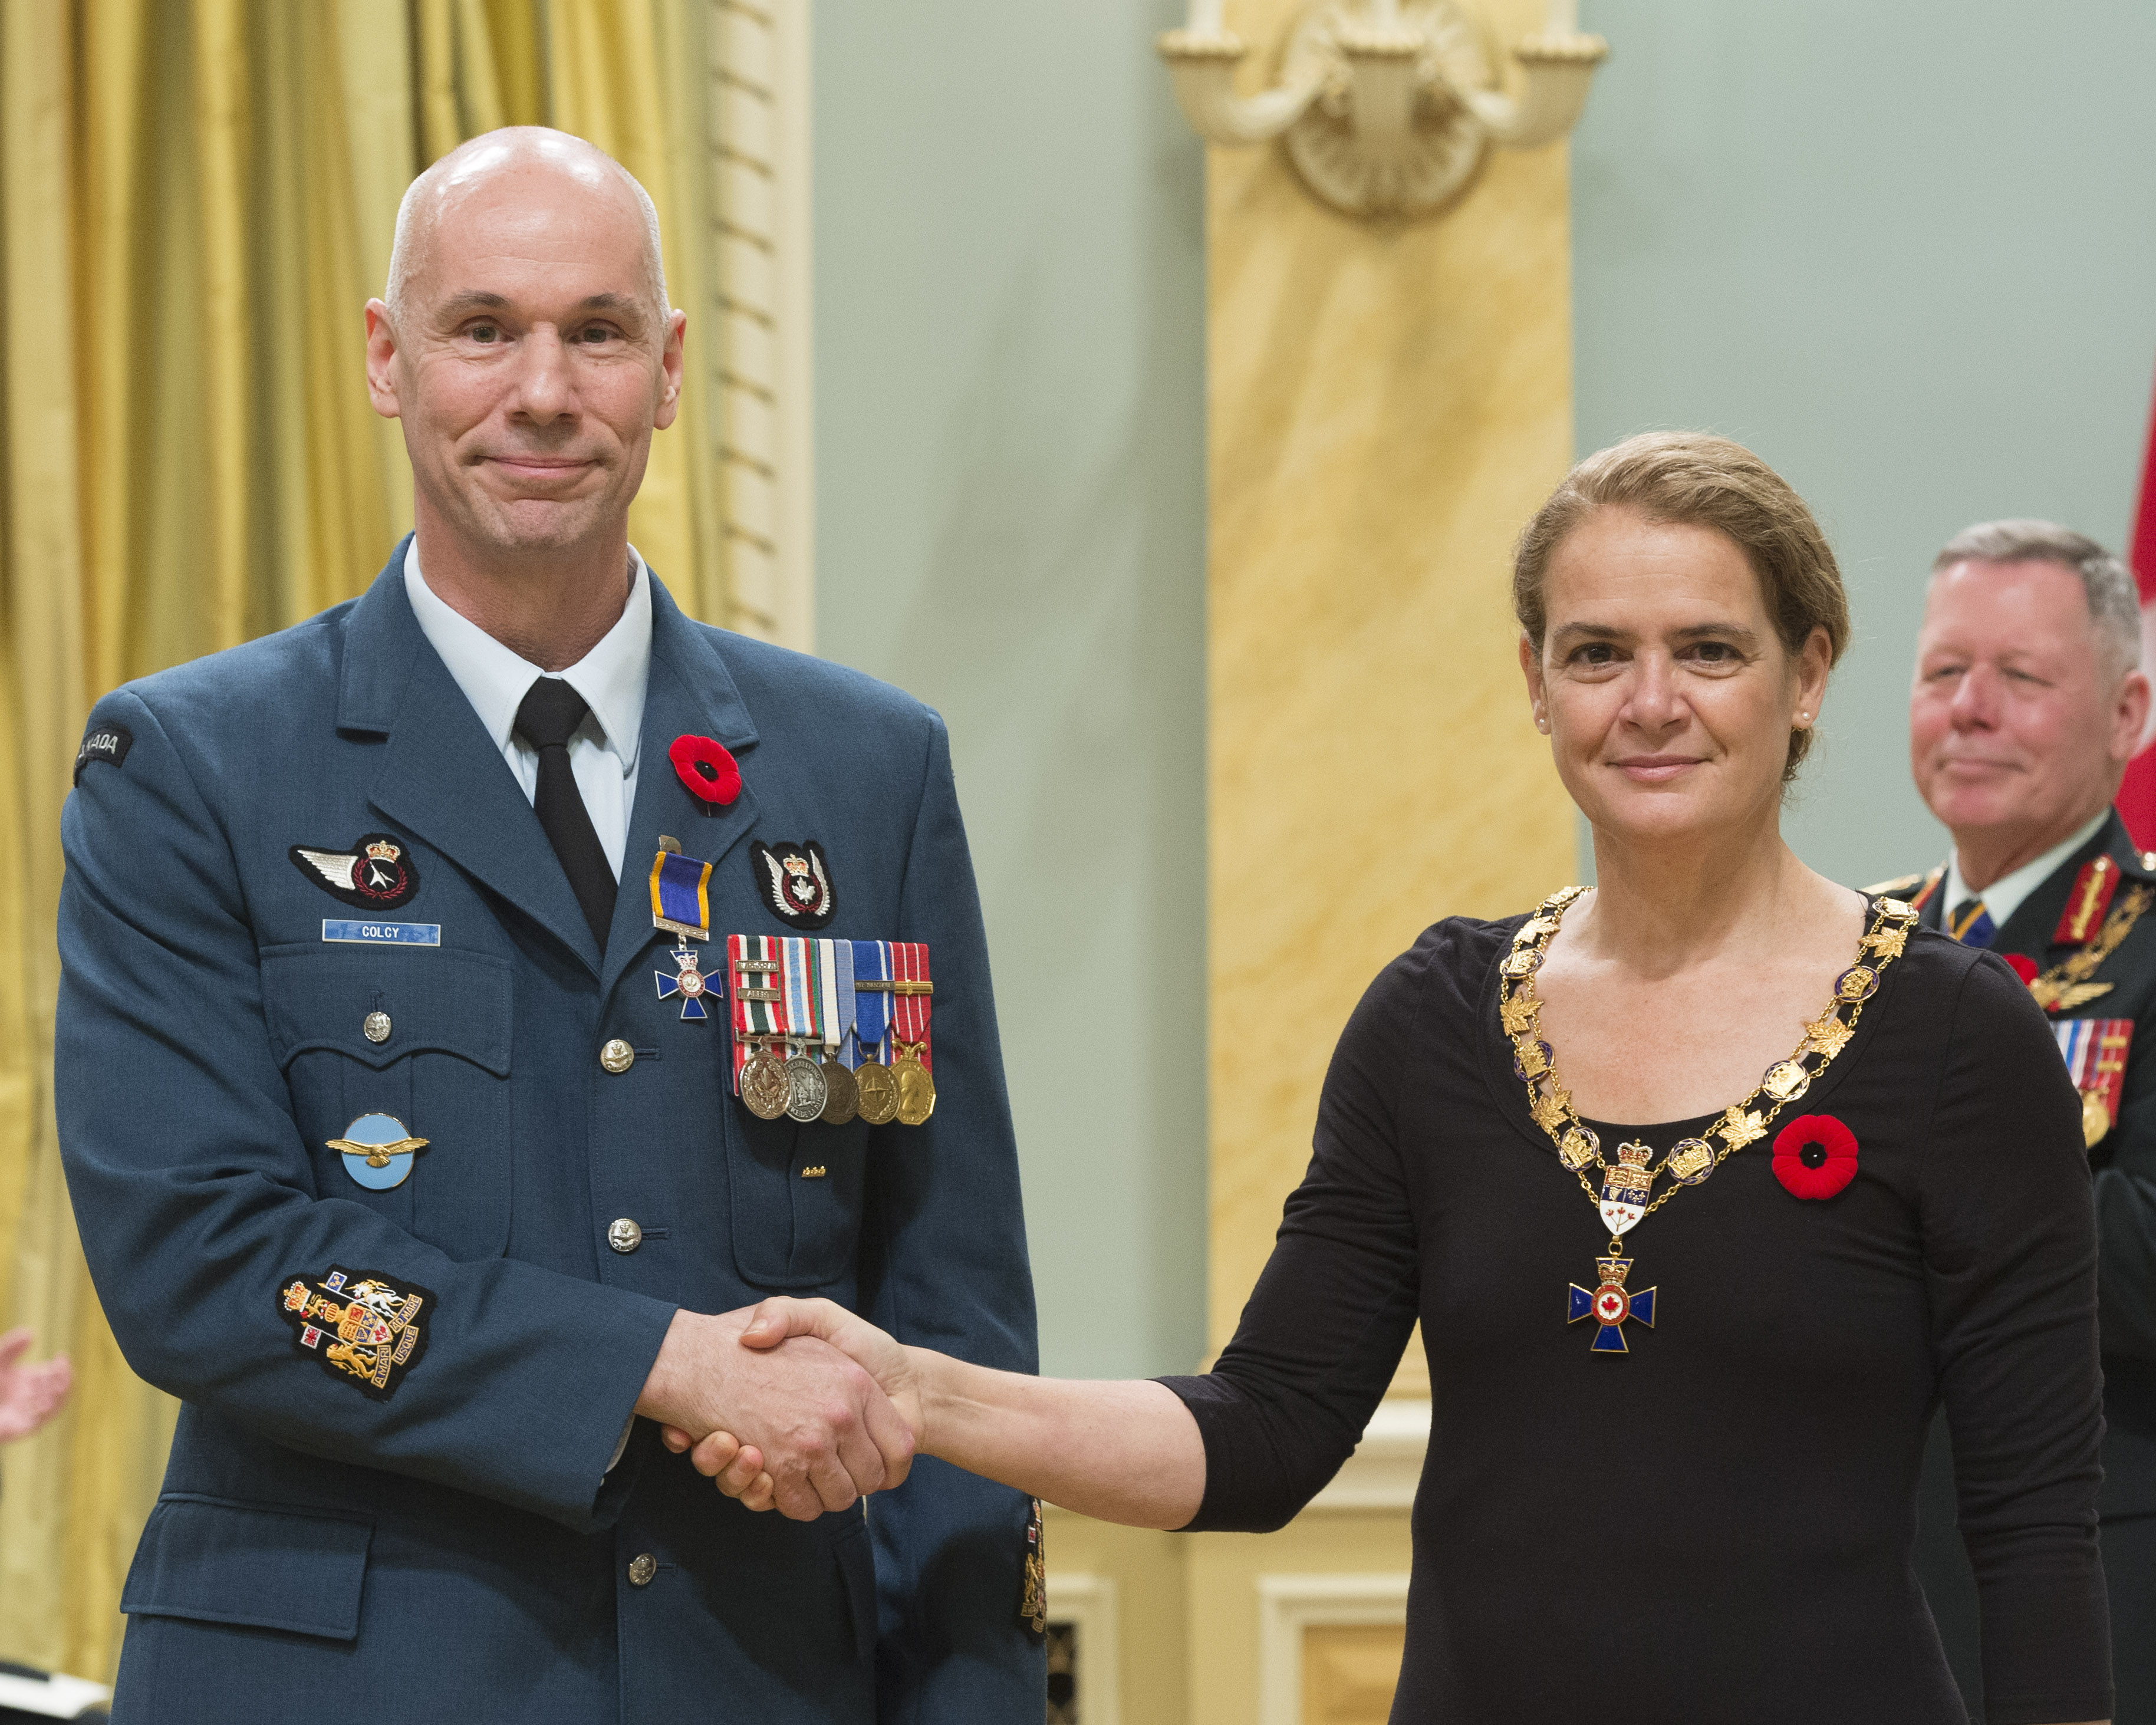 Governor General and Commander-in-Chief of Canada Julie Payette inducts Chief Warrant Officer Kevin Denis Colcy, 443 Maritime Helicopter Squadron, Victoria, British Columbia, into the Order of Military Merit at Rideau Hall on November 10, 2017. PHOTO: Sergeant Johanie Maheu, Rideau Hall © OSGG, GG05-2017-0395-034